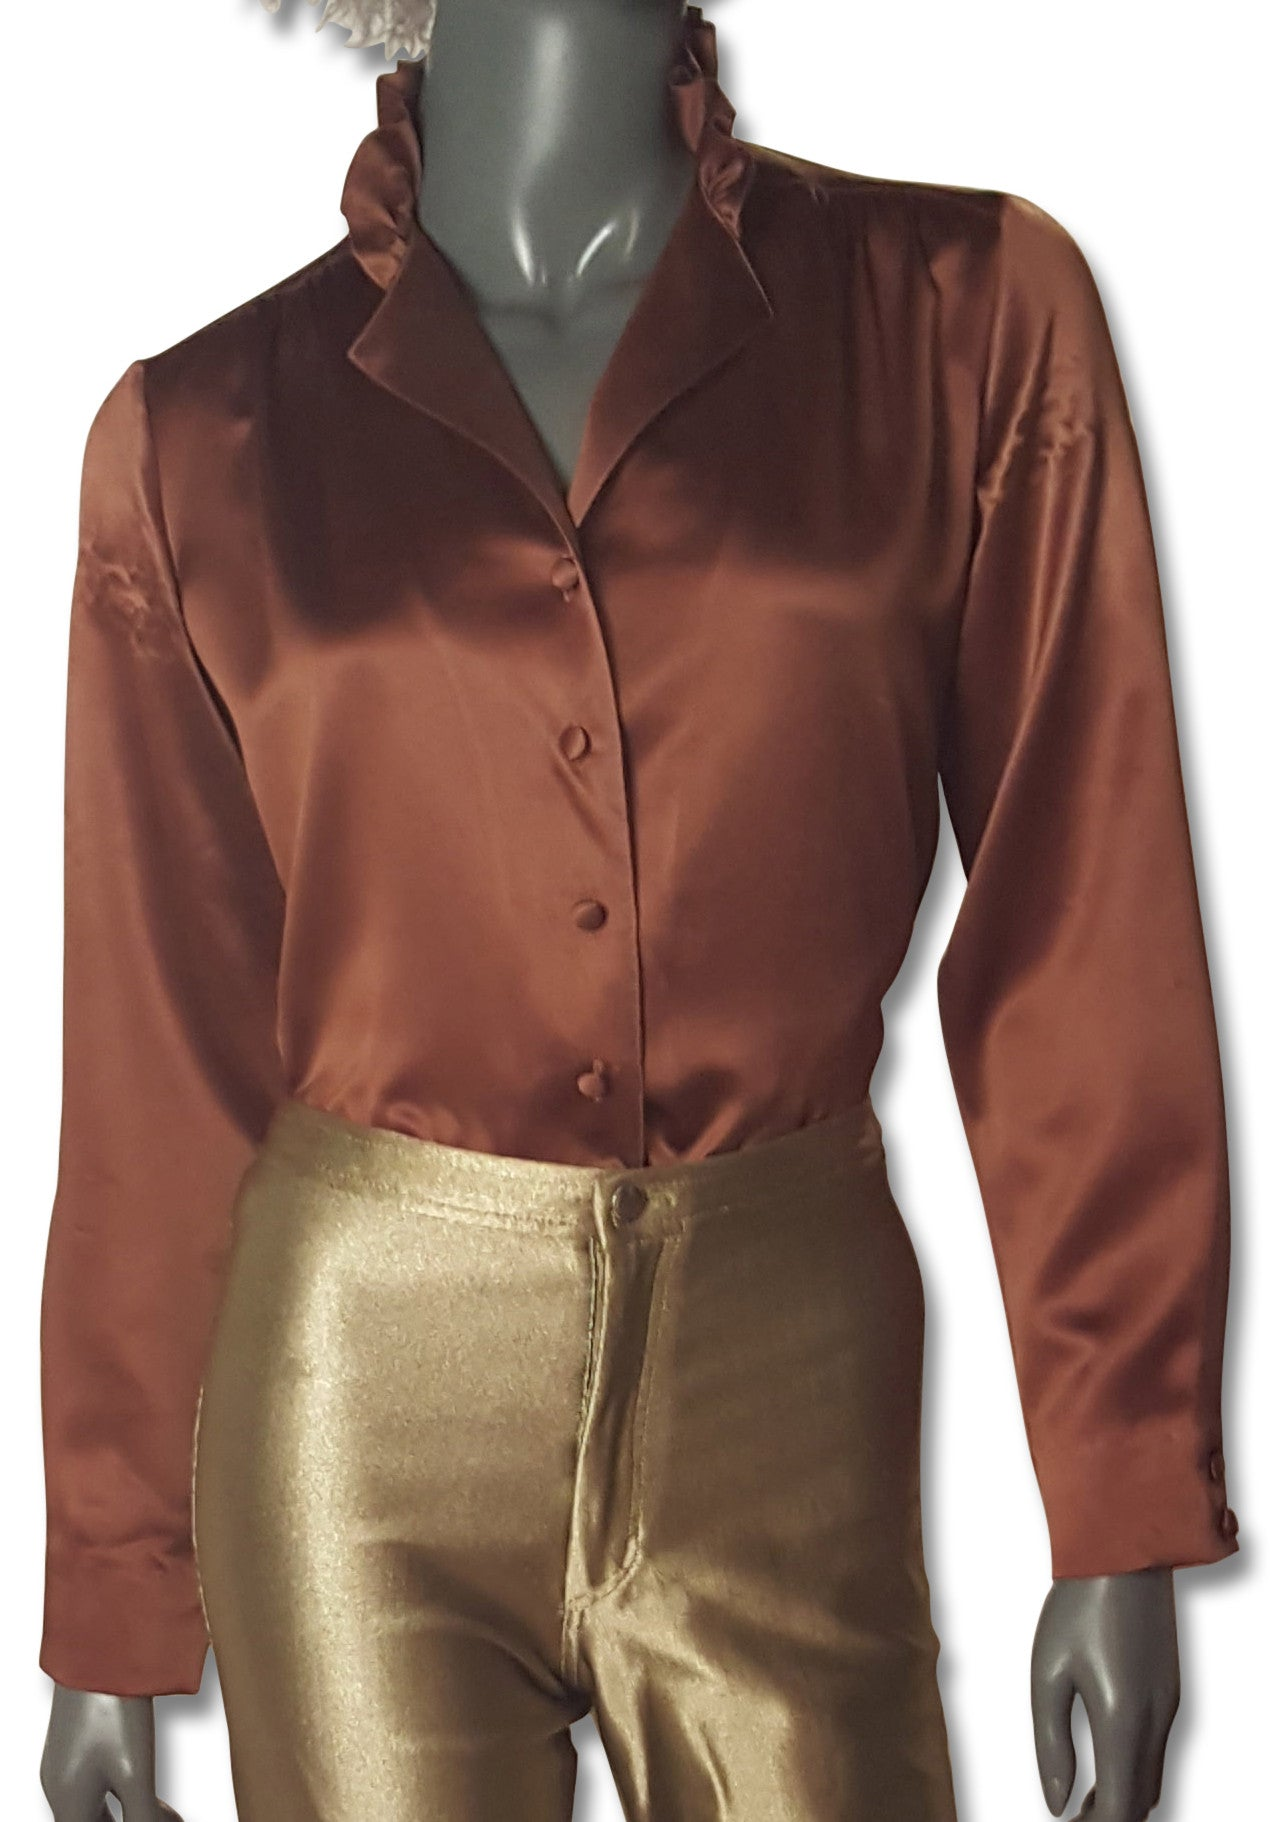 962116cad24508 Milk Chocolate Satin 70s Blouse - refashioner - 1 ...